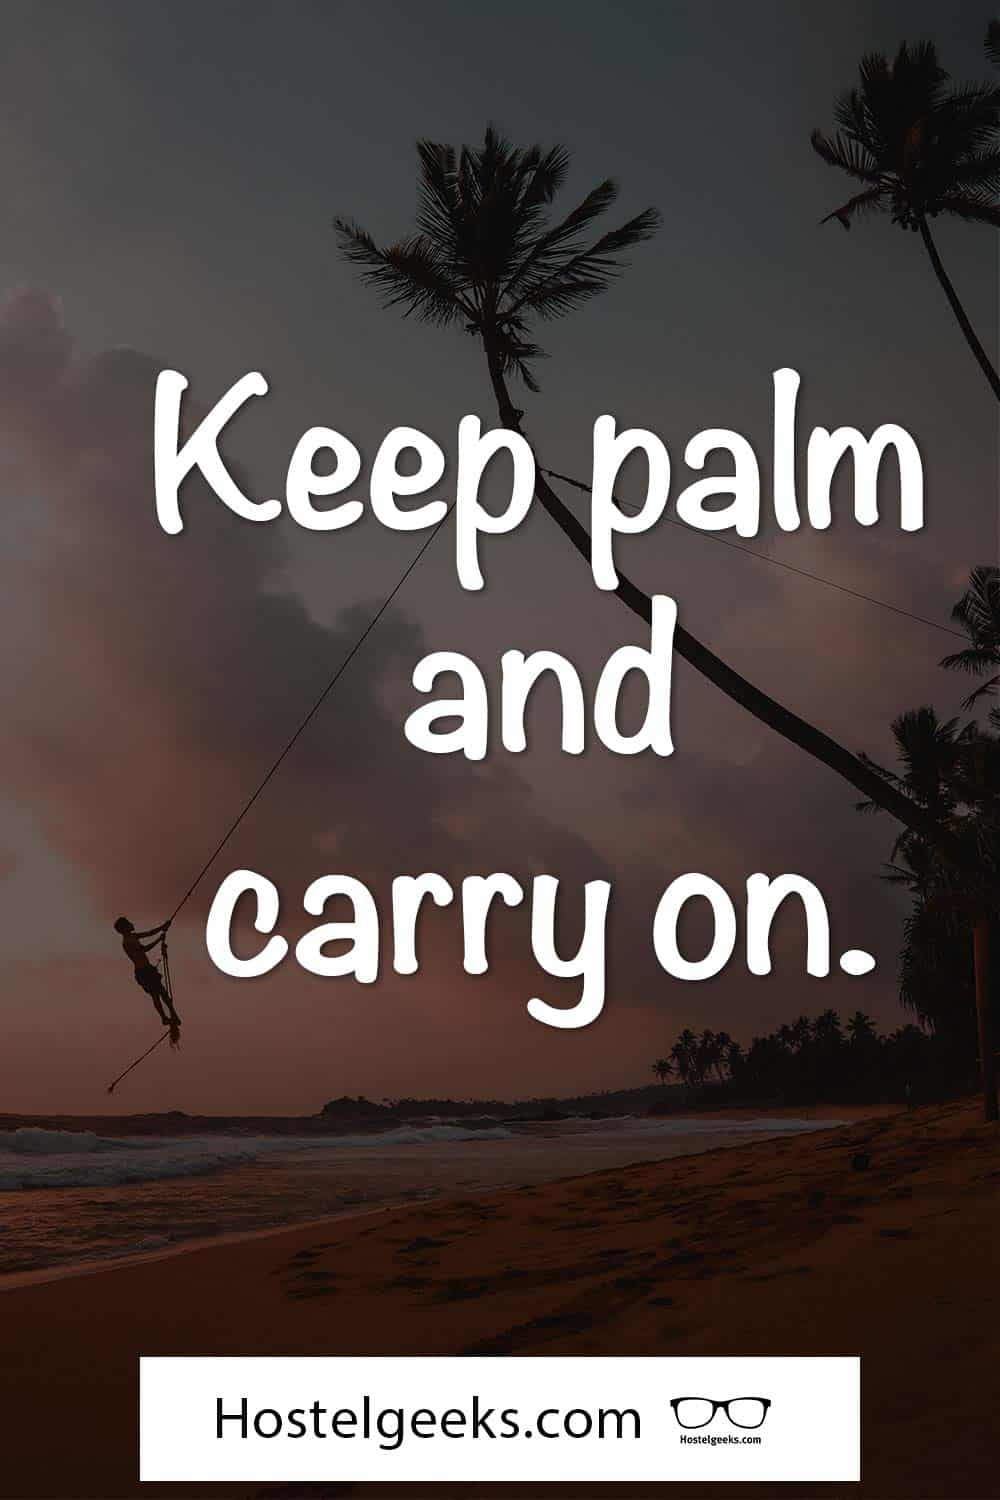 Keep palm and carry on.